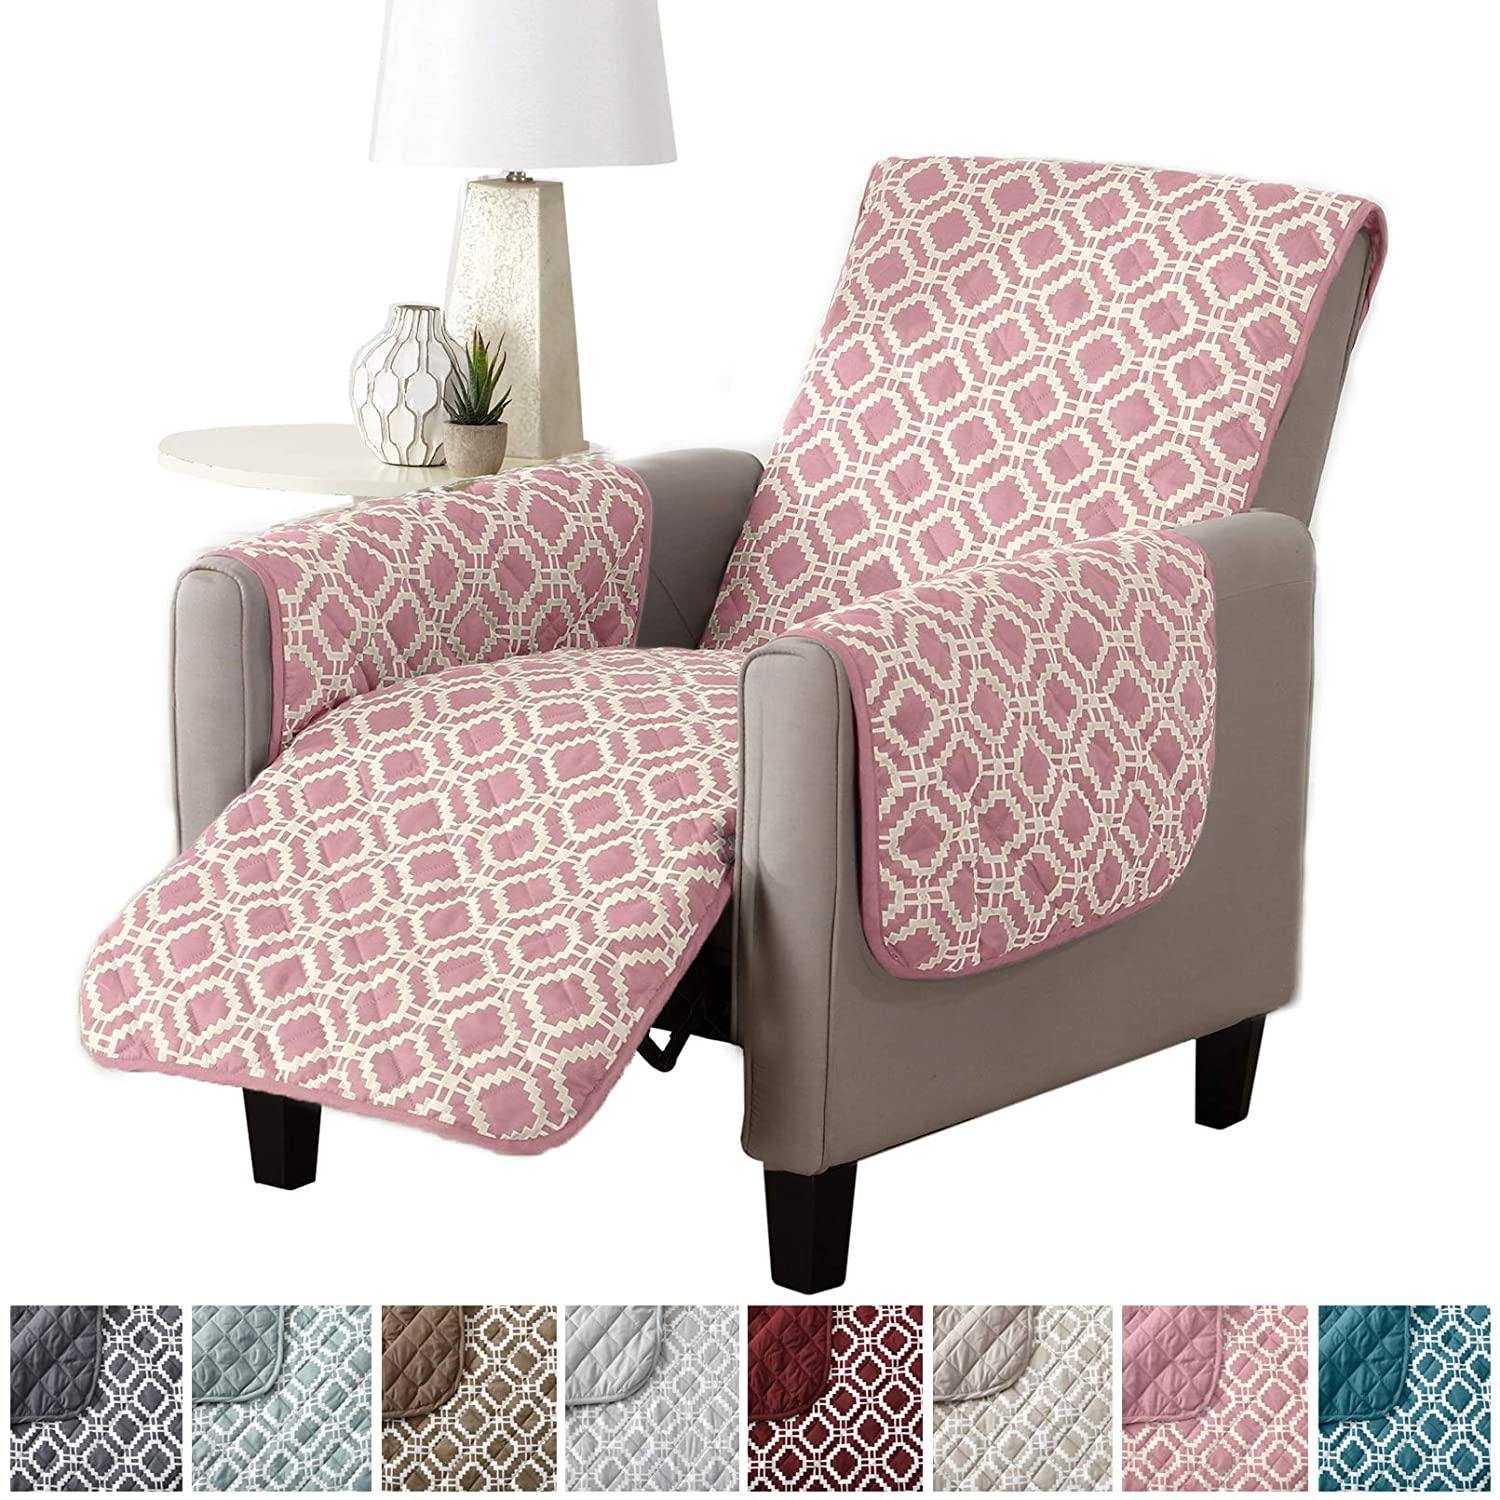 Modern Printed Reversible Stain Resistant Furniture Protector with Geometric Design. Perfect Cover for Pets and Kids. Adjustable Elastic Straps Included. Liliana Collection (Chair, Fossil Brown) Great Bay Home